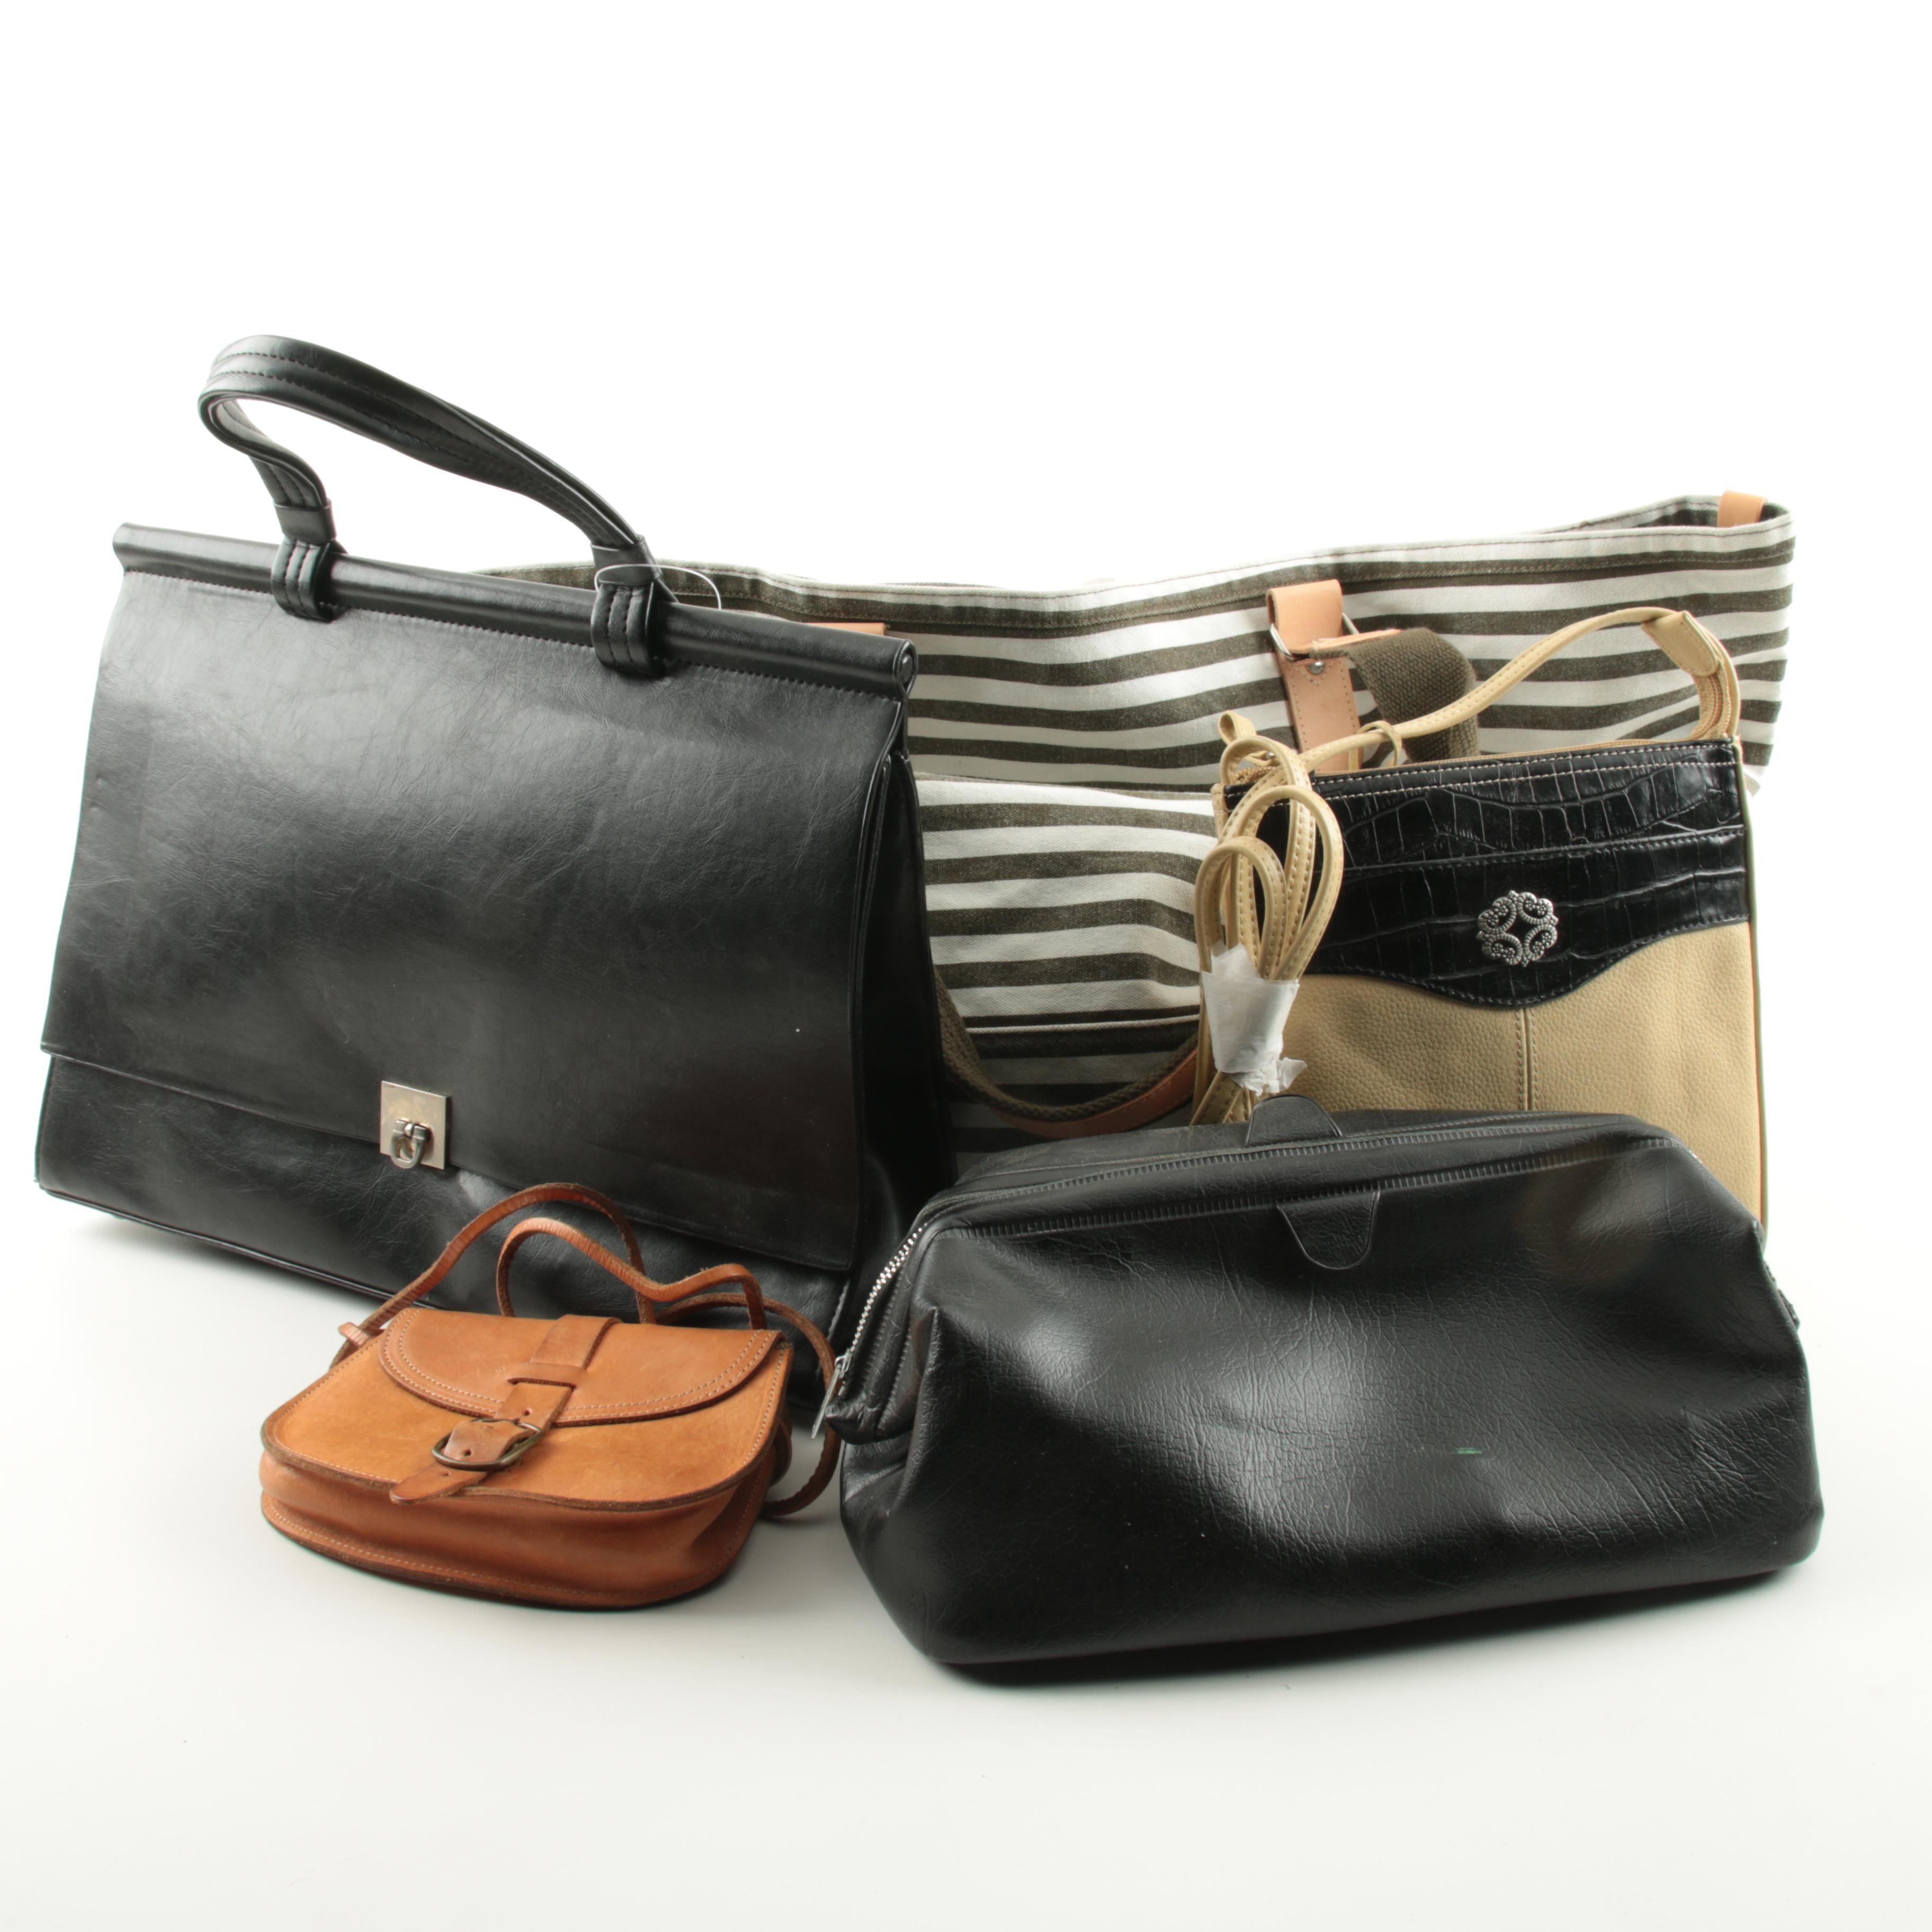 Leather Handbags Including a Gap Canvas Shopper Tote